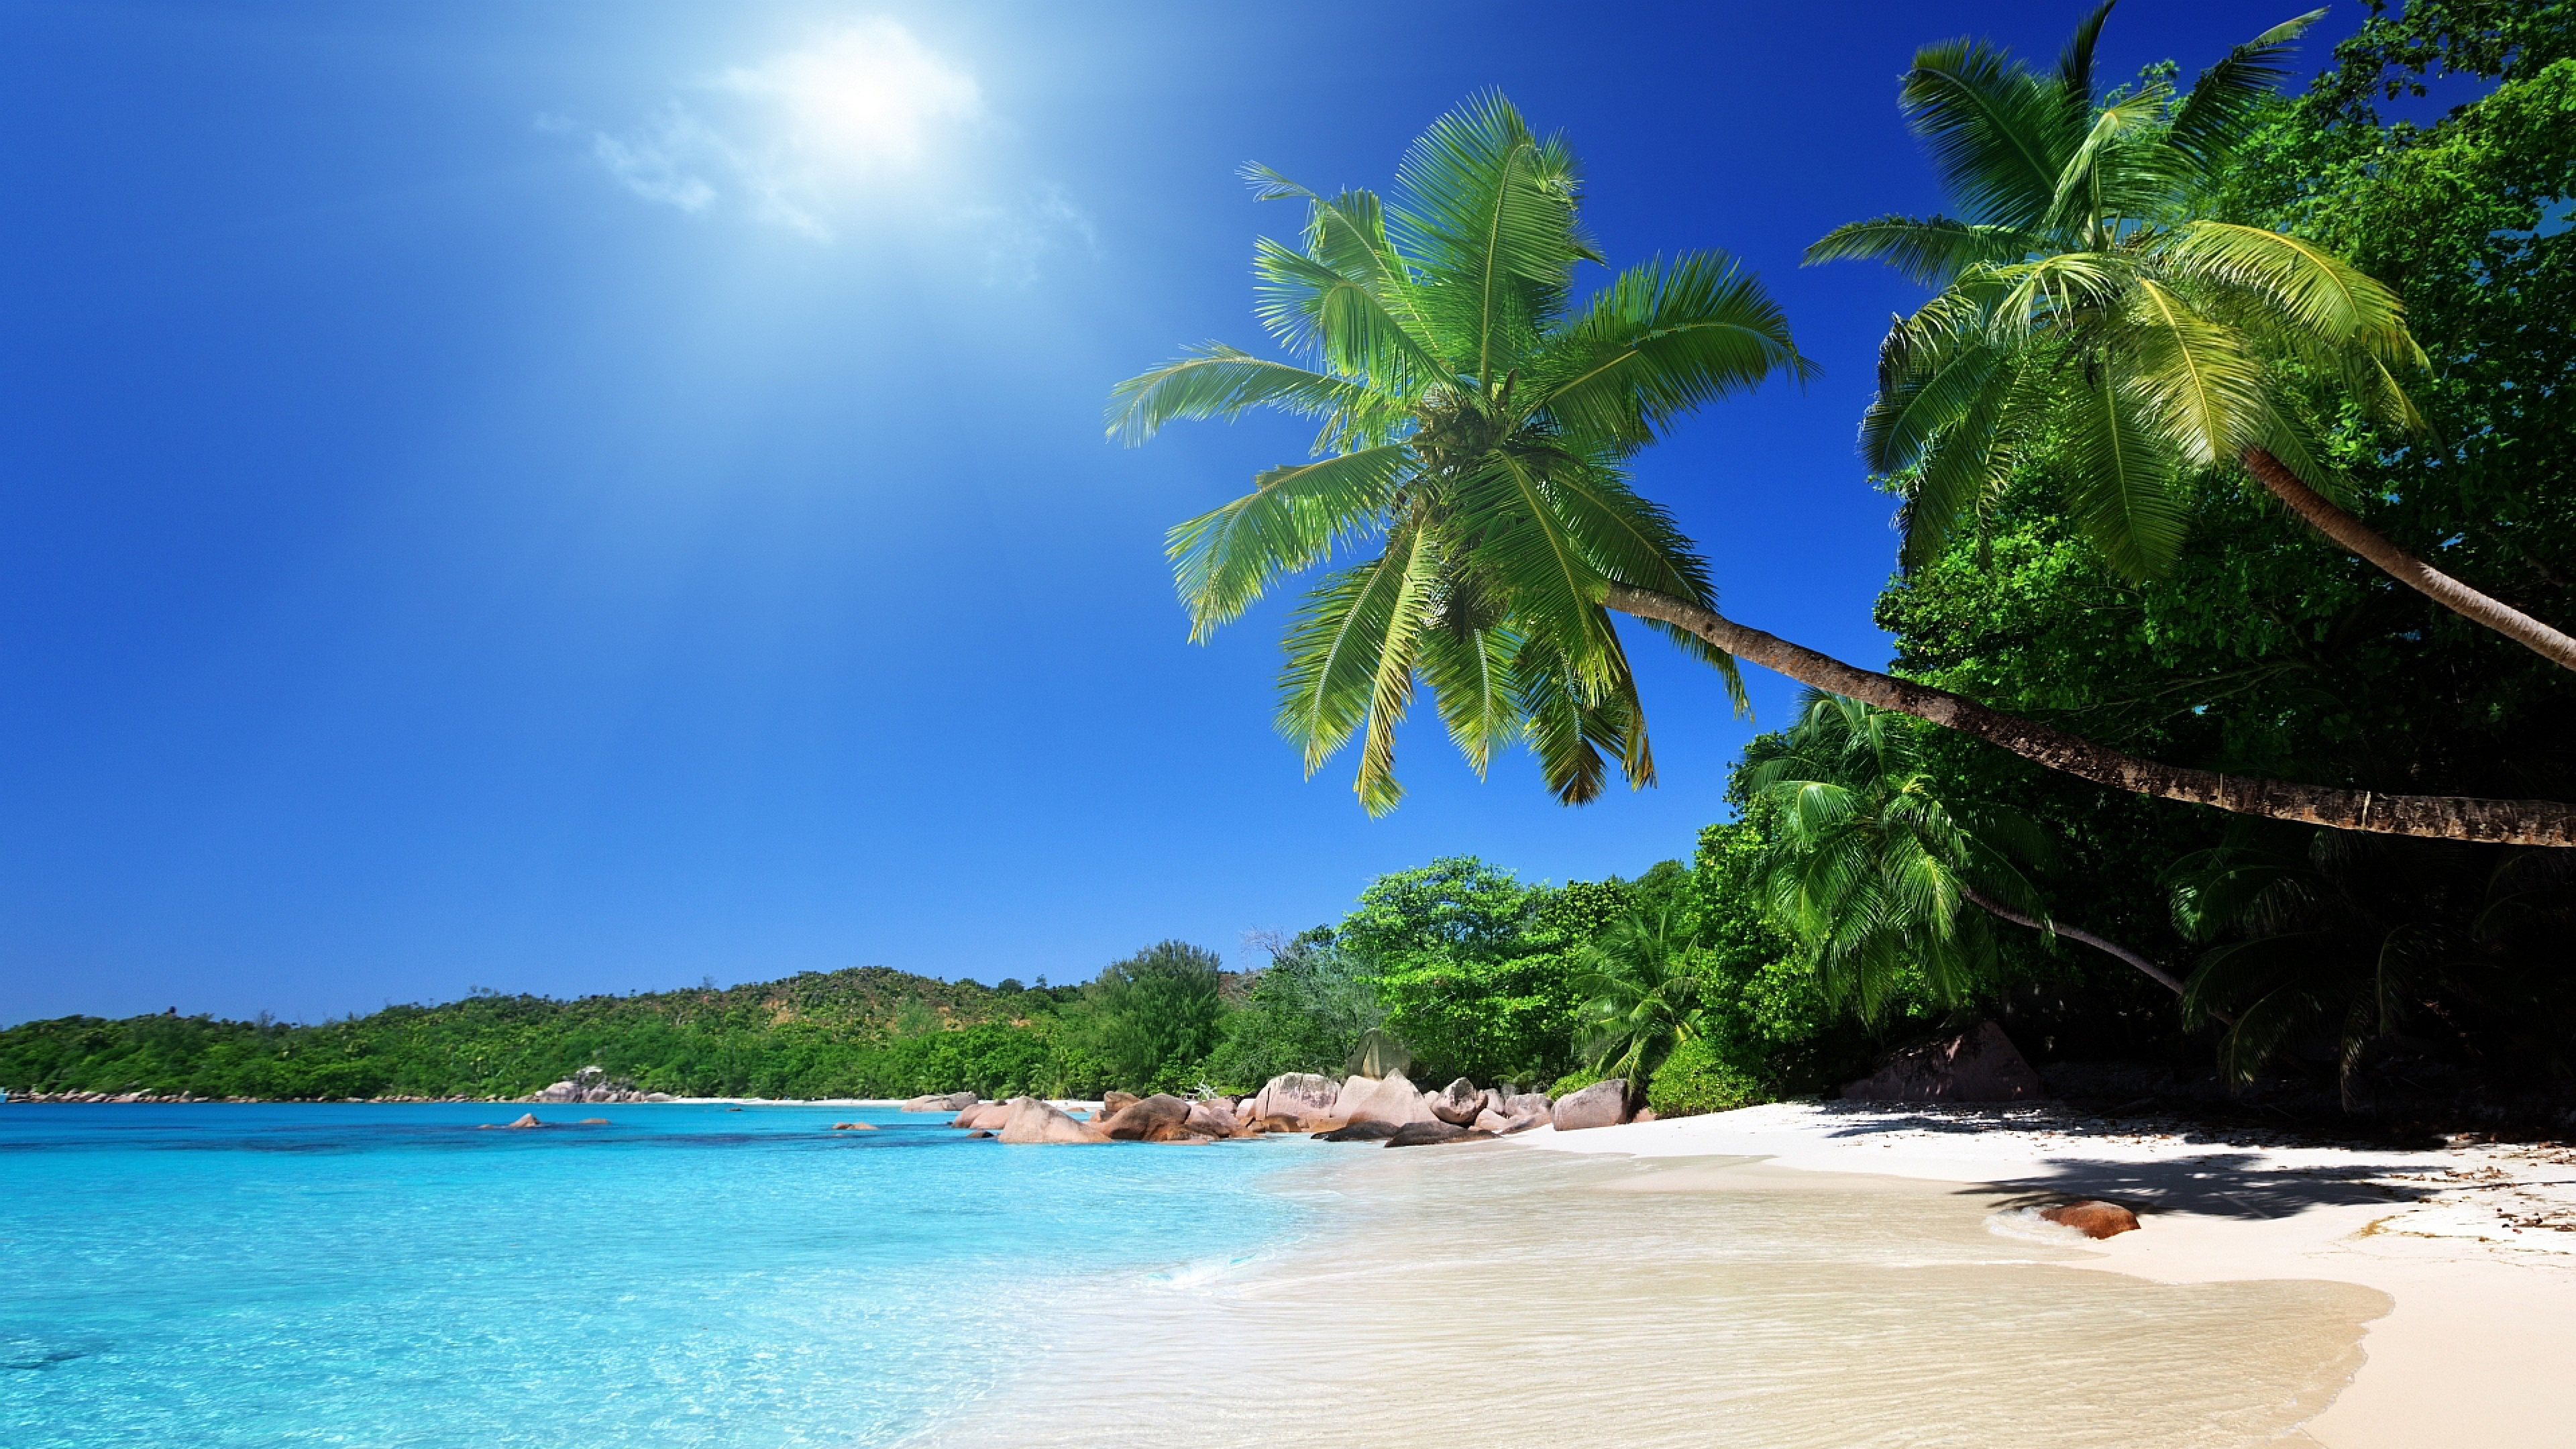 3840x2160 Beach Sand Palm trees Tropical Wallpaper Background 4K 3840x2160